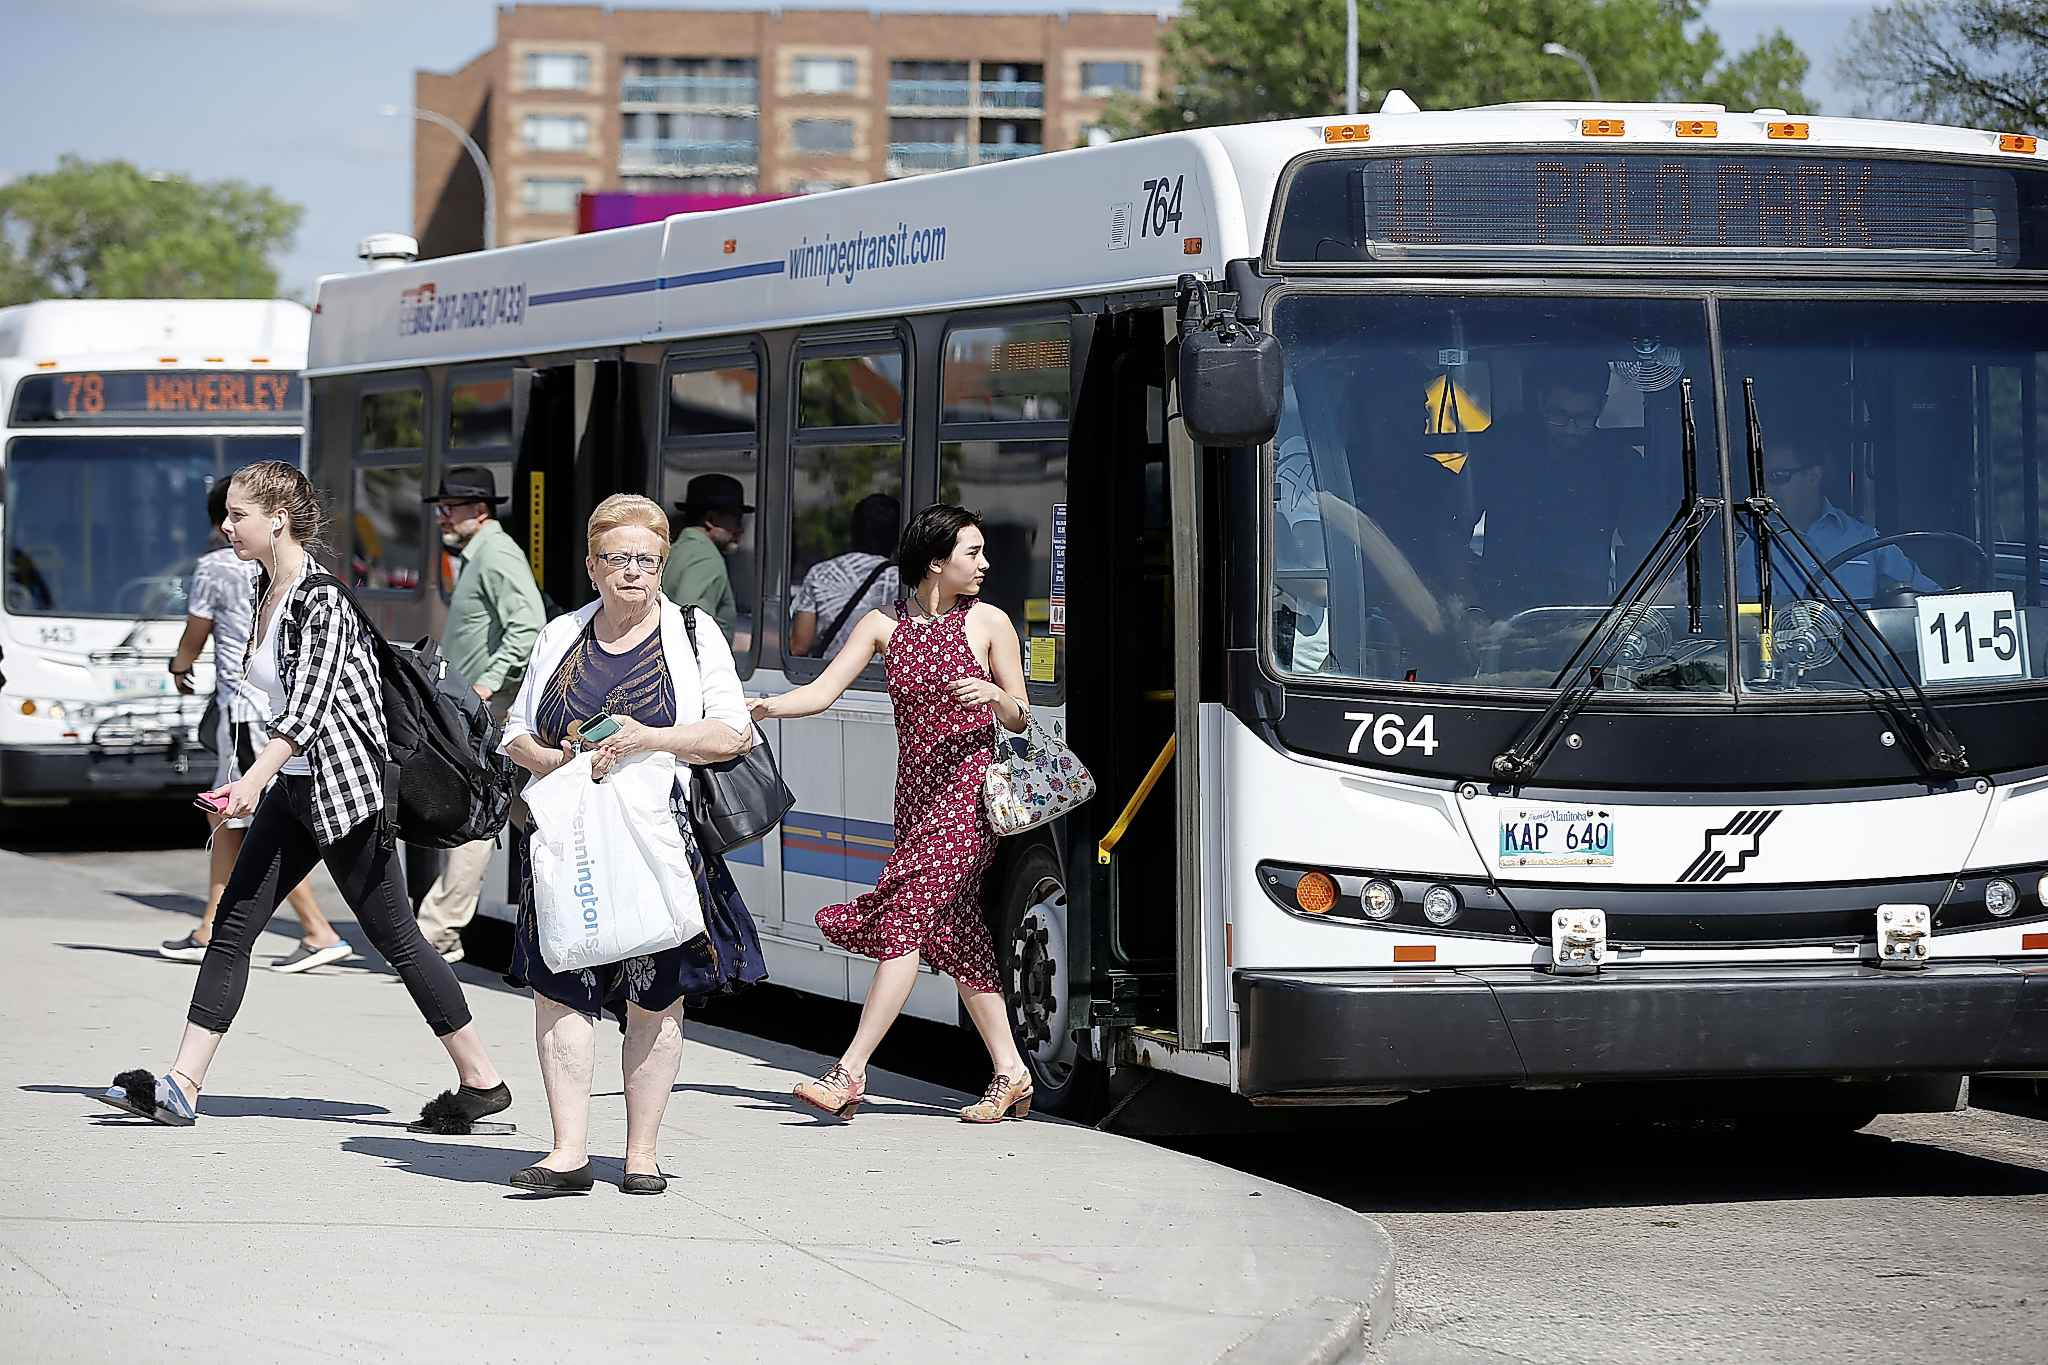 A bus that arrives late can initiate a chain reaction of misfortune for passengers who are then too late to connect with other buses, and possibly made late for appointments, school or jobs. (John Woods / Free Press files)